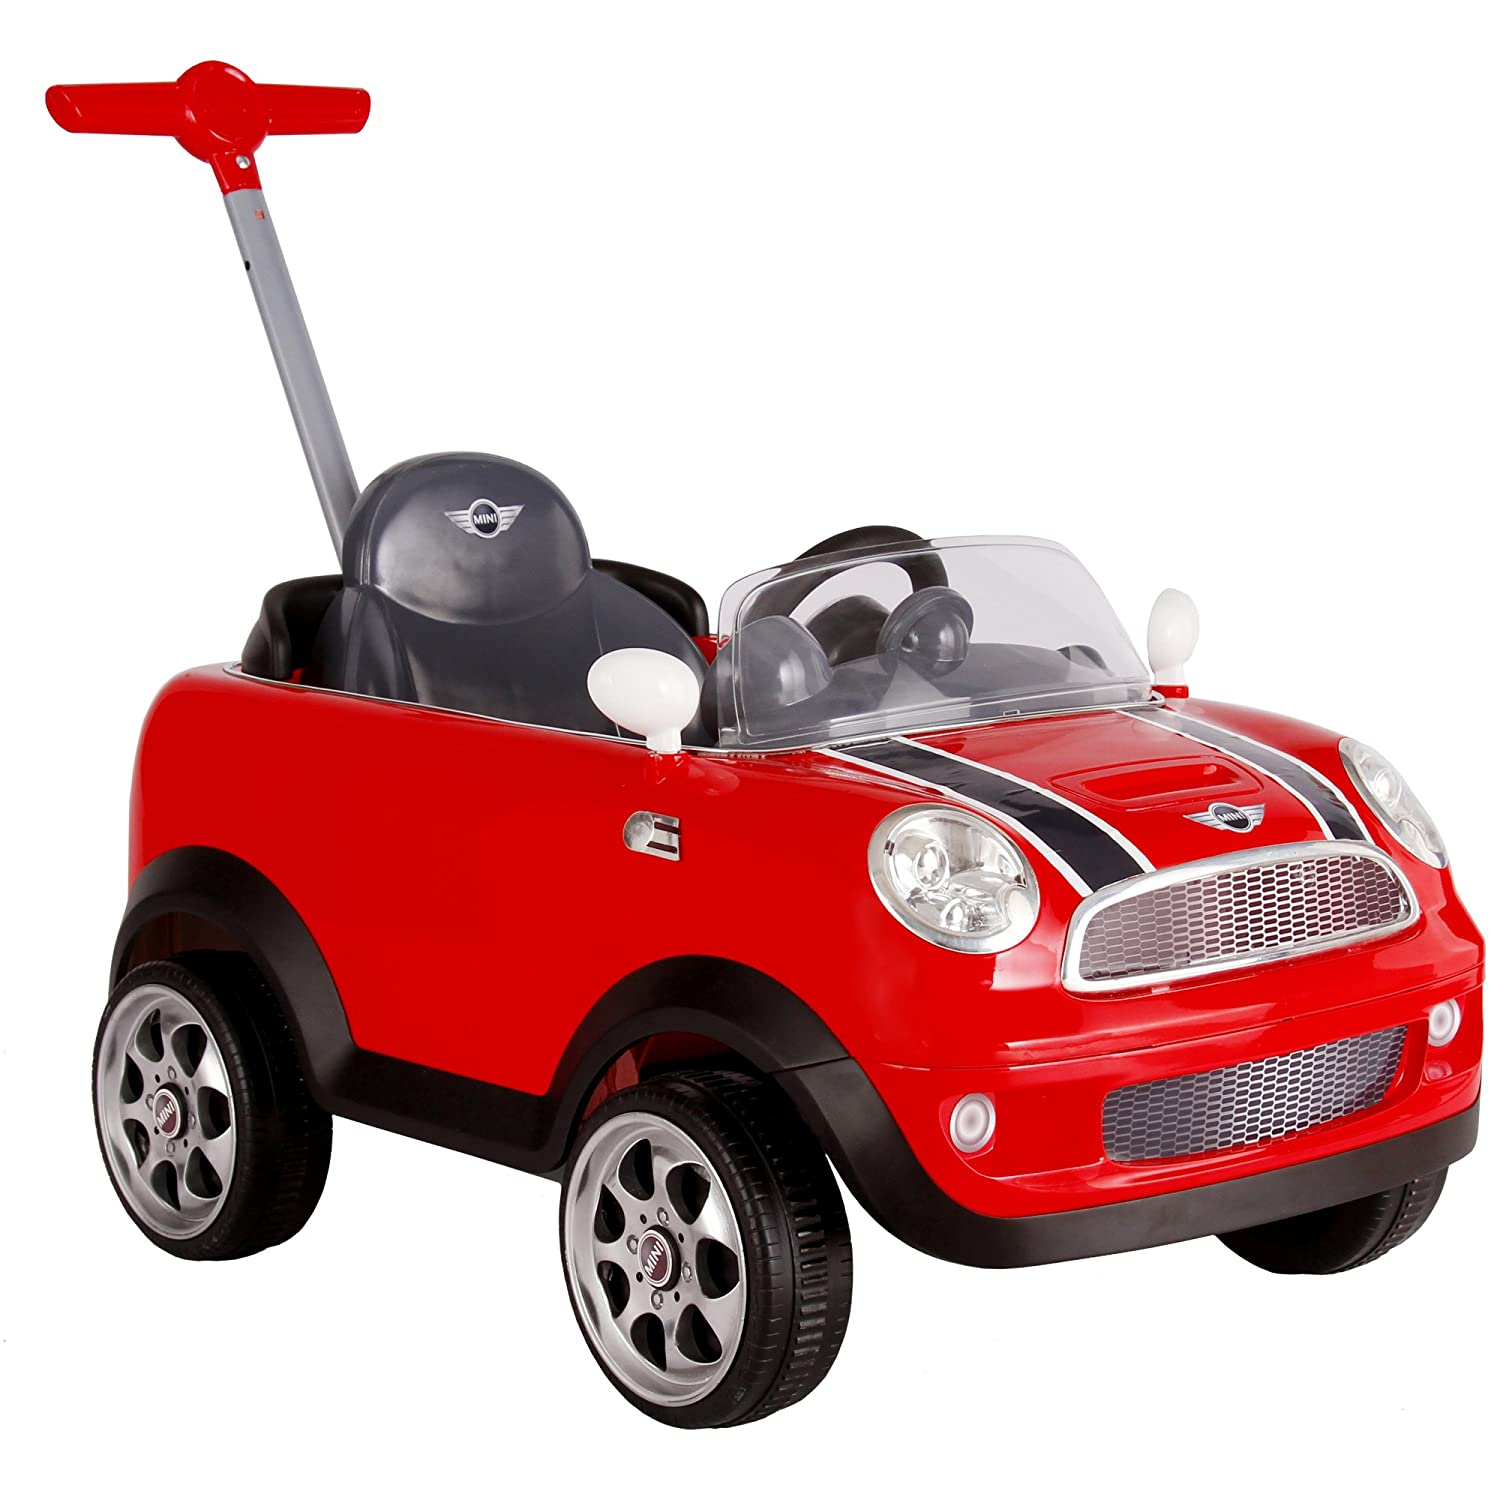 ROLLPLAY Push Car with Adjustable Footrest, For Children 1 Year and Older, Up to 20 kg, MINI Cooper, Red 42513